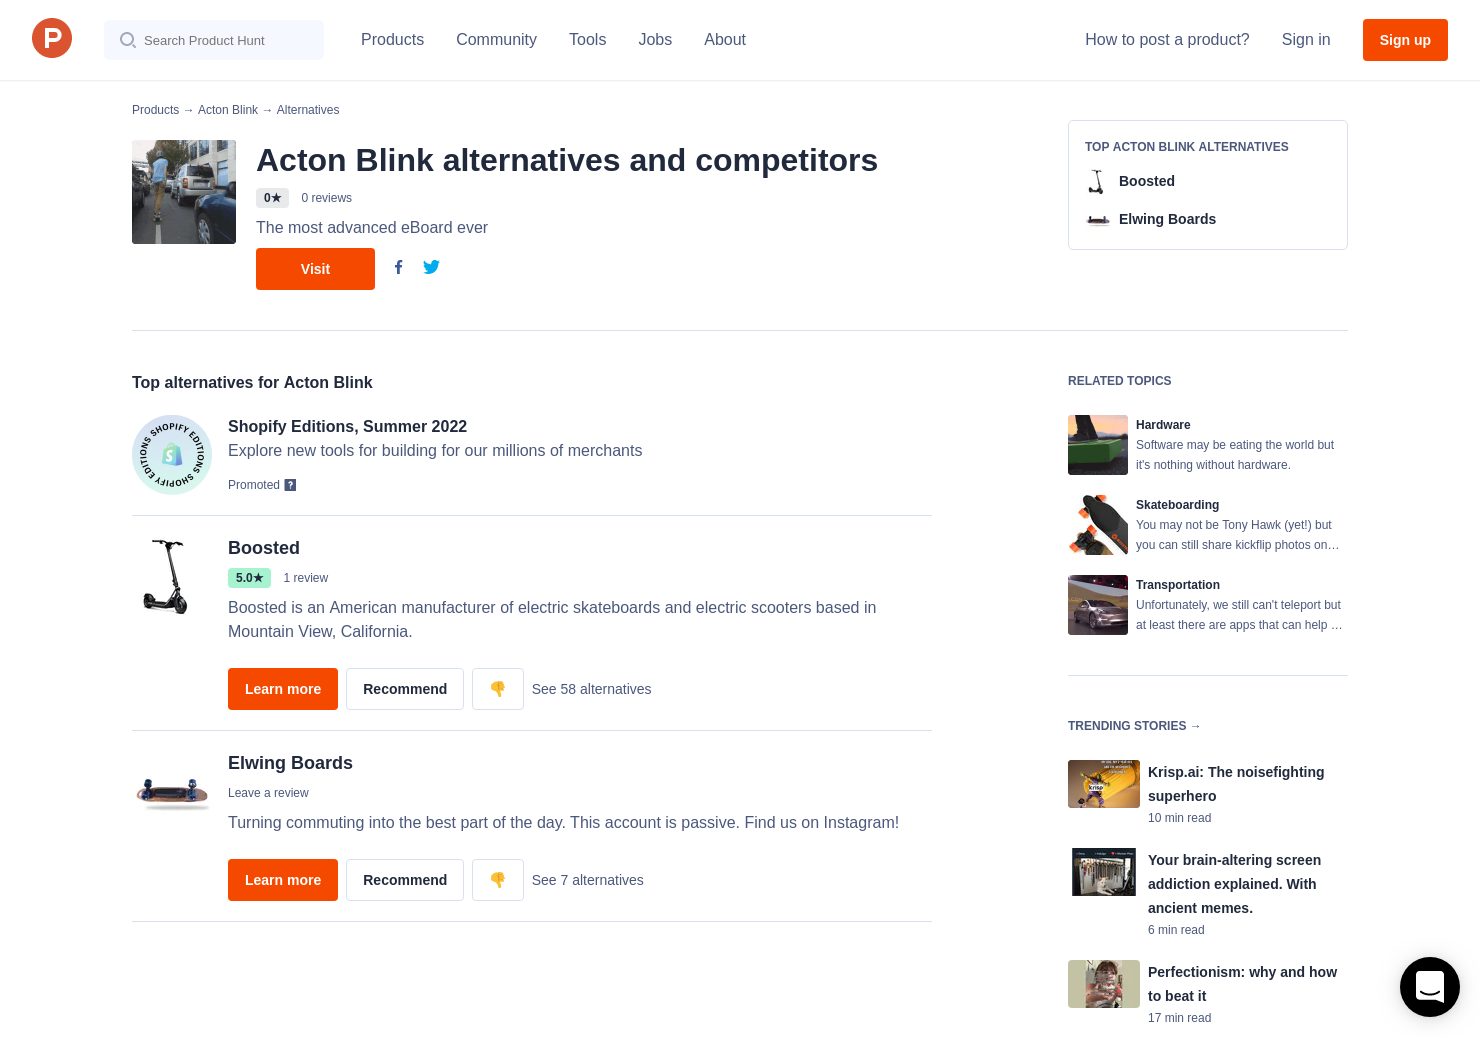 2 Alternatives to Acton Blink   Product Hunt